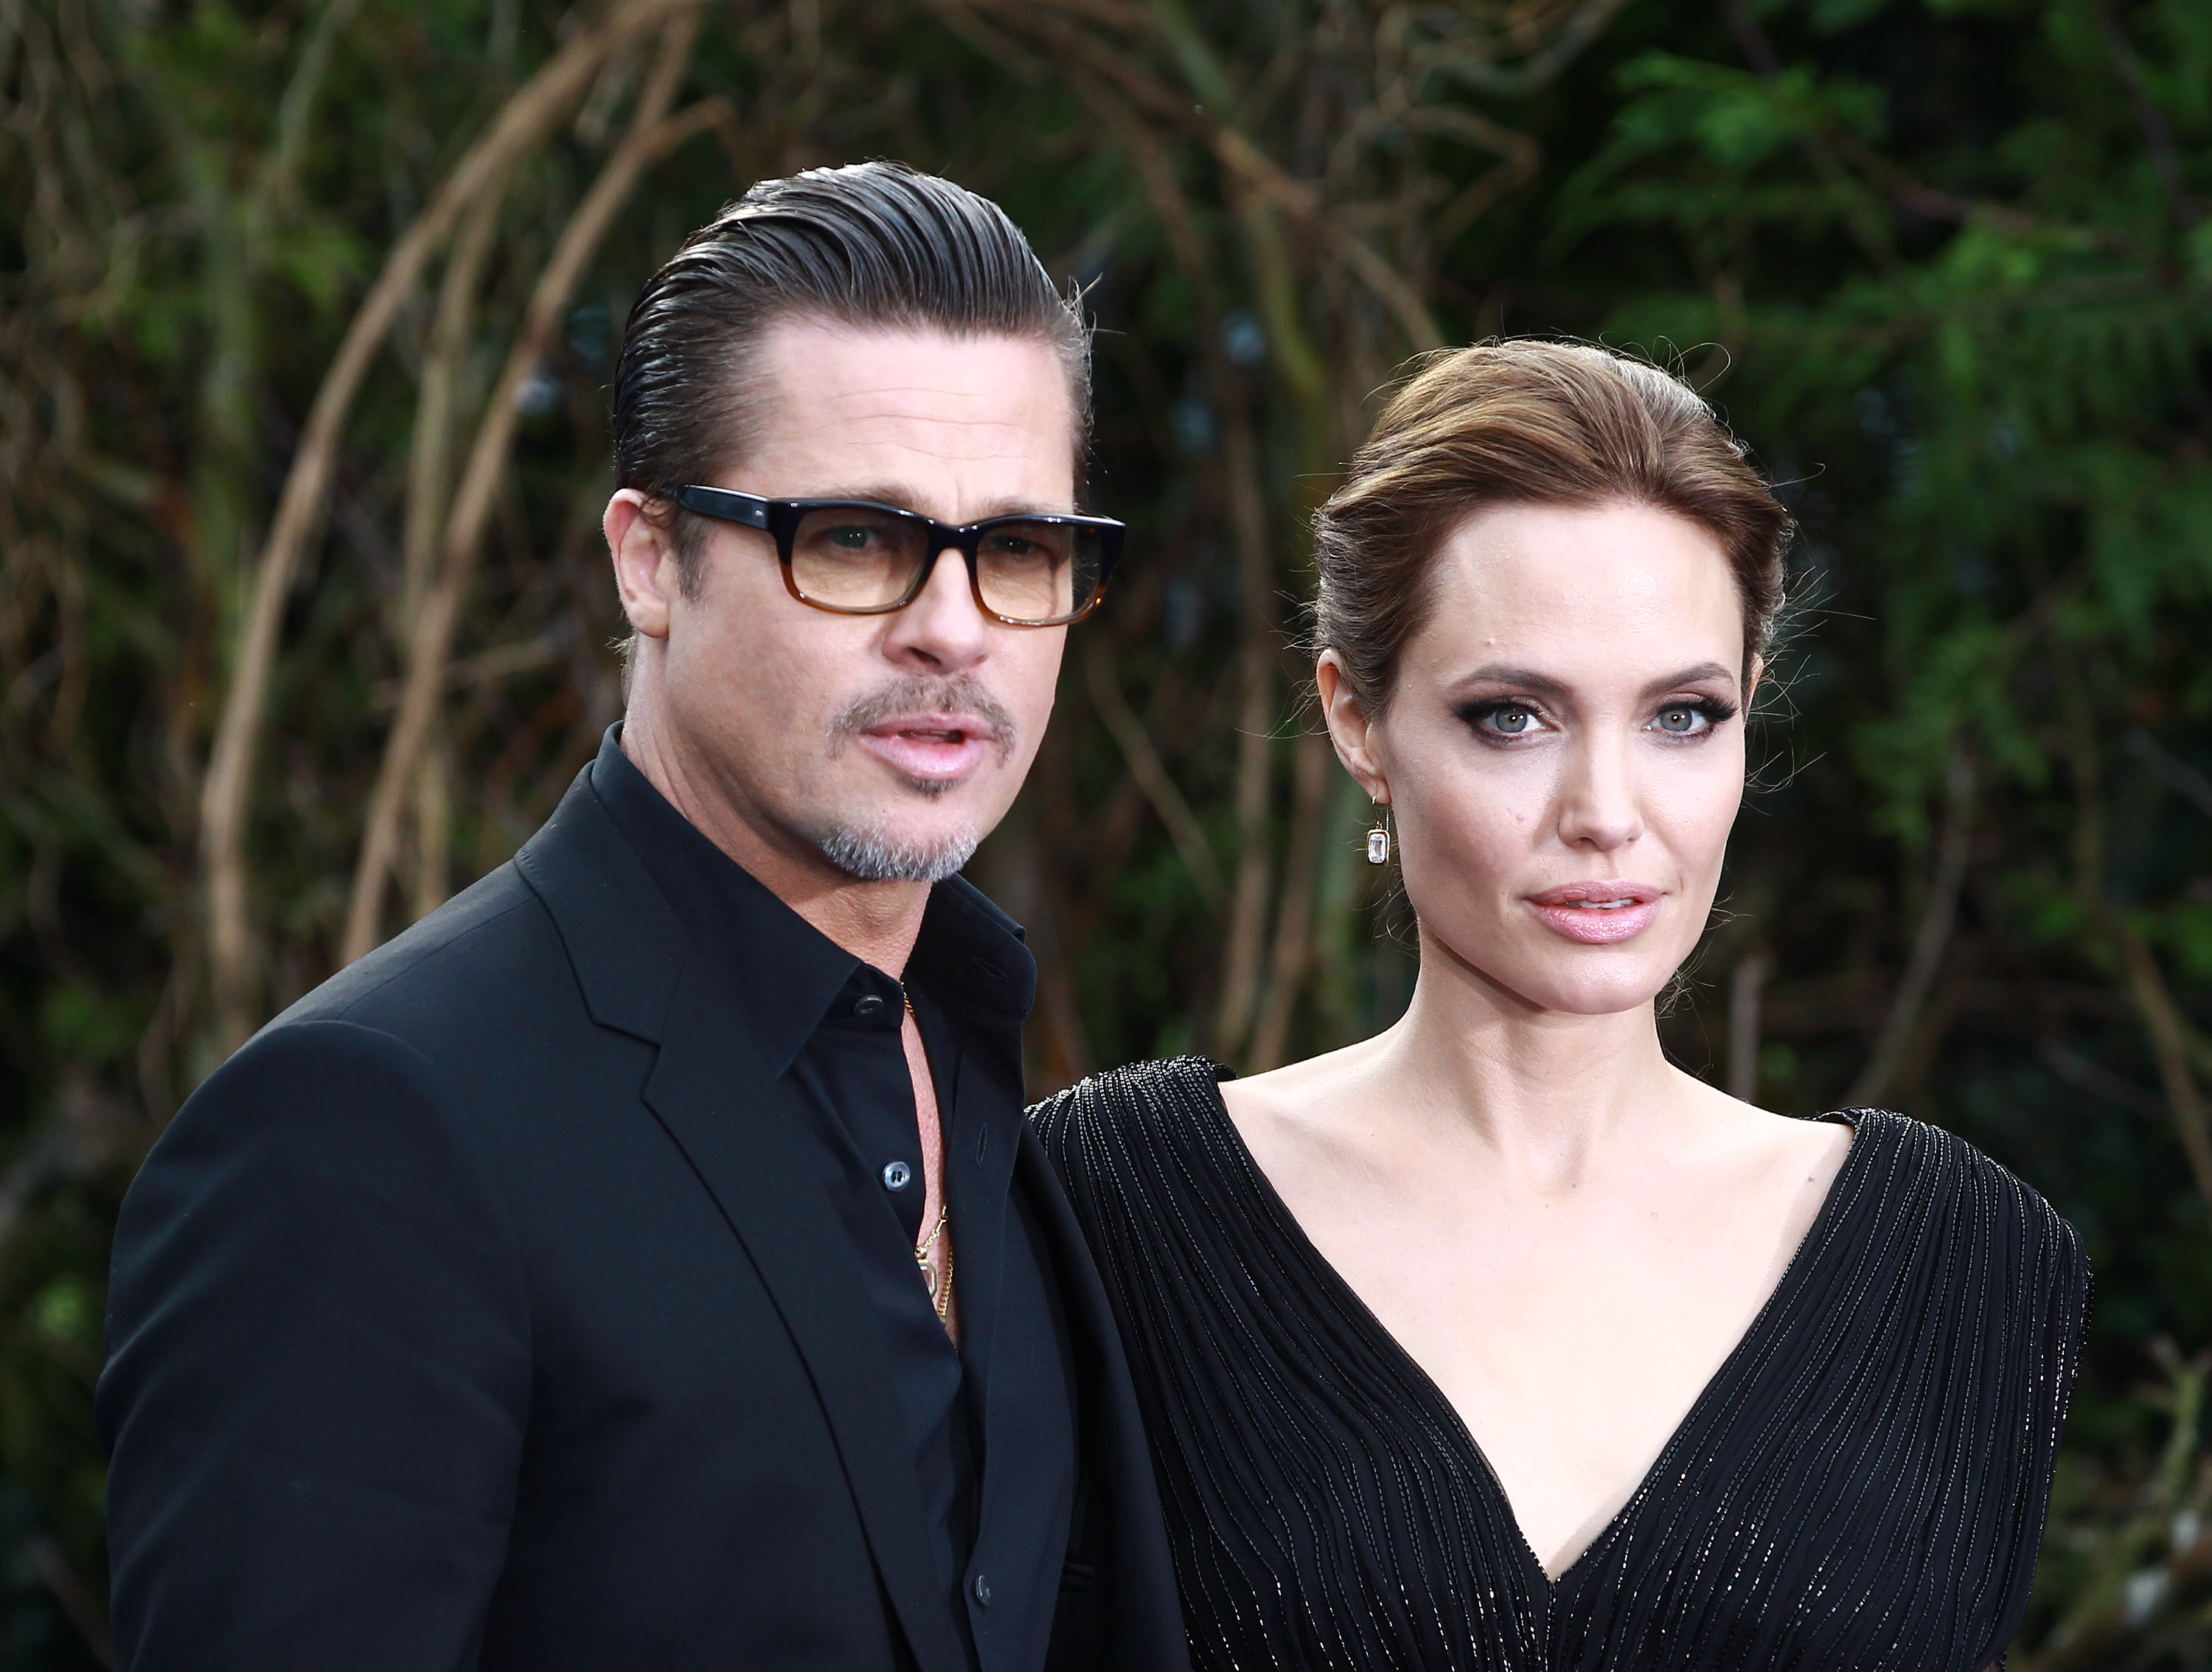 Brad Pitt and Angelina Jolie attends a private reception as costumes and props from Disney's  Maleficent  are exhibited in support of Great Ormond Street Hospital at Kensington Palace on May 8, 2014 in London.